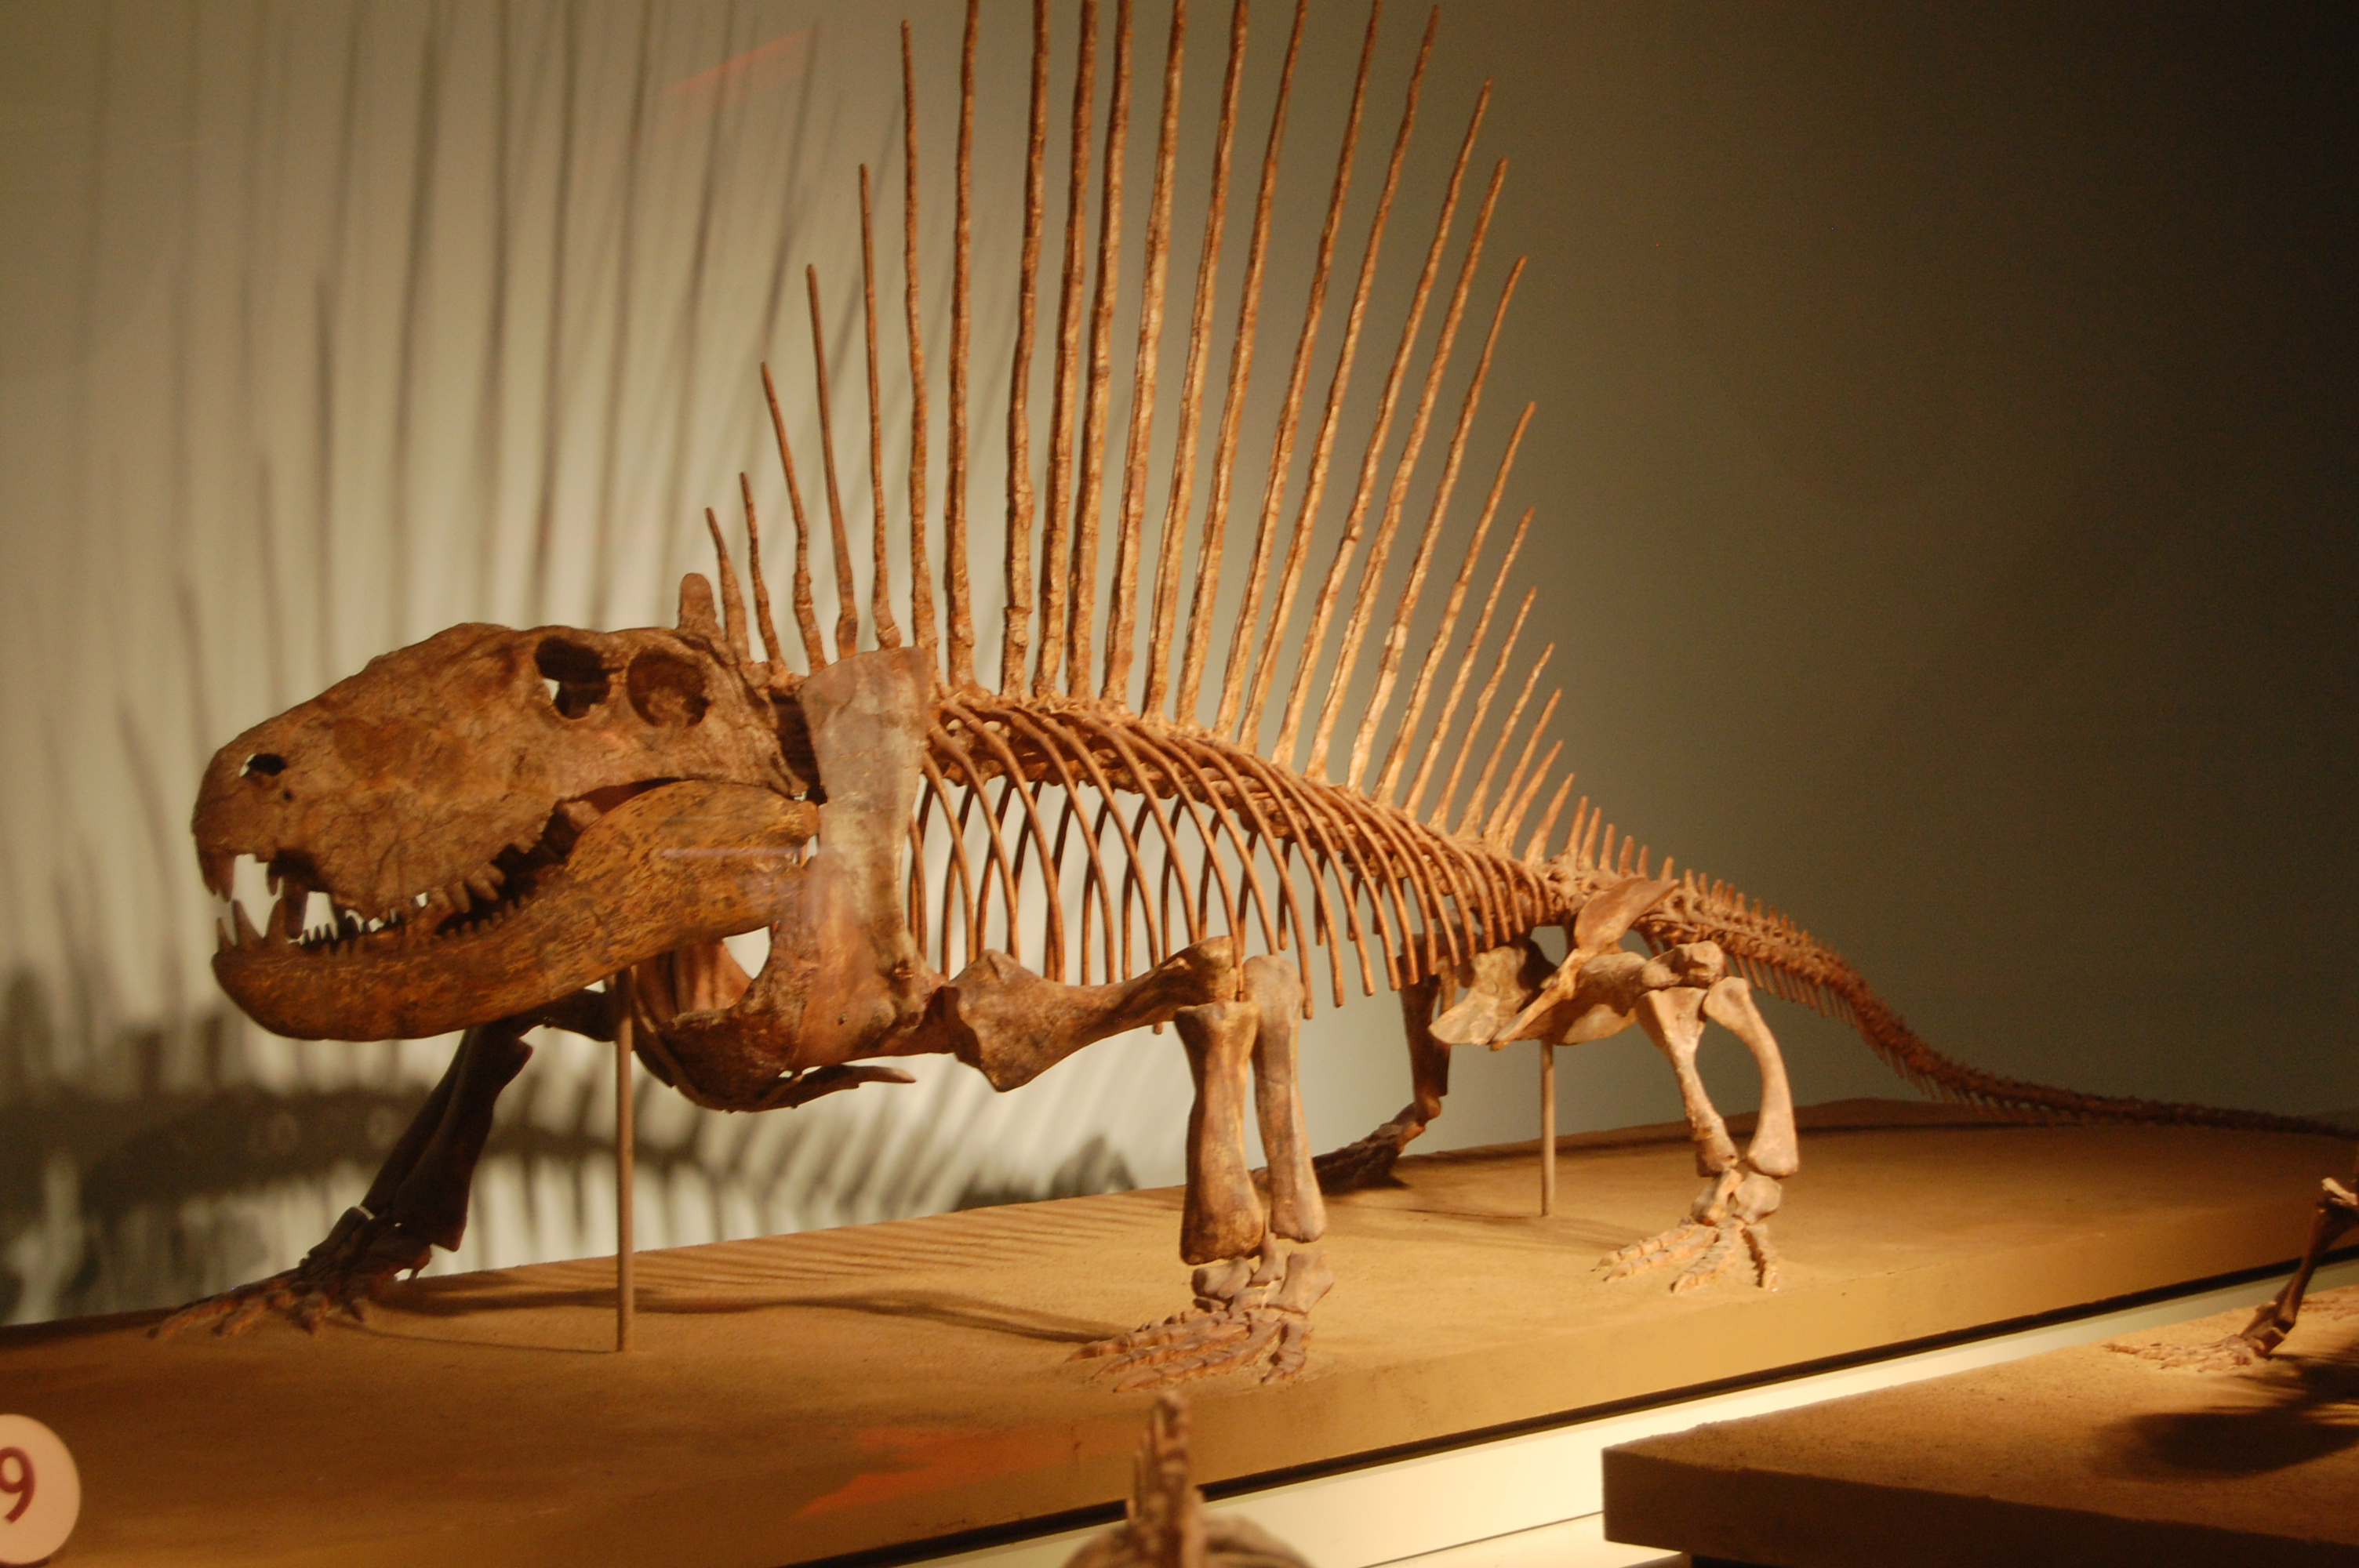 http://upload.wikimedia.org/wikipedia/commons/4/46/Dimetrodon_Field_Museum.jpg